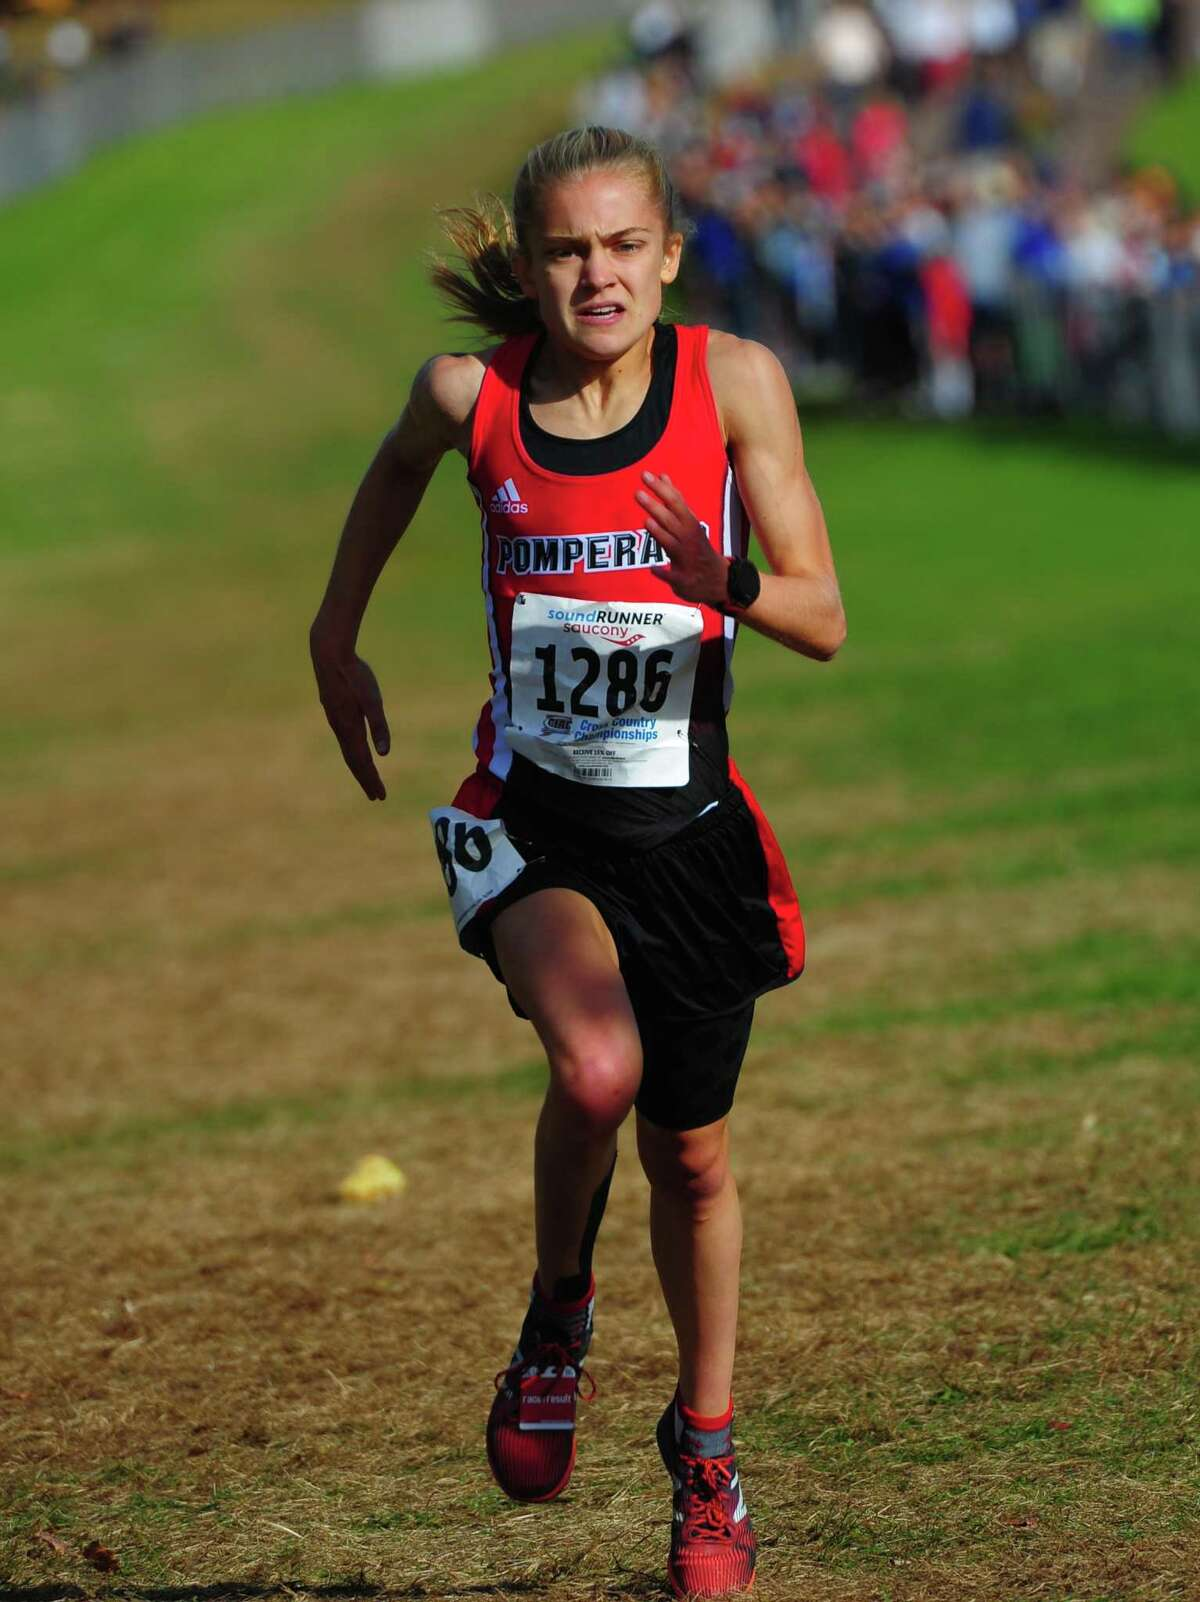 Pomperaug's Kate Wiser crosses the finish line for a course record during the Class L cross country championships on Oct. 26.